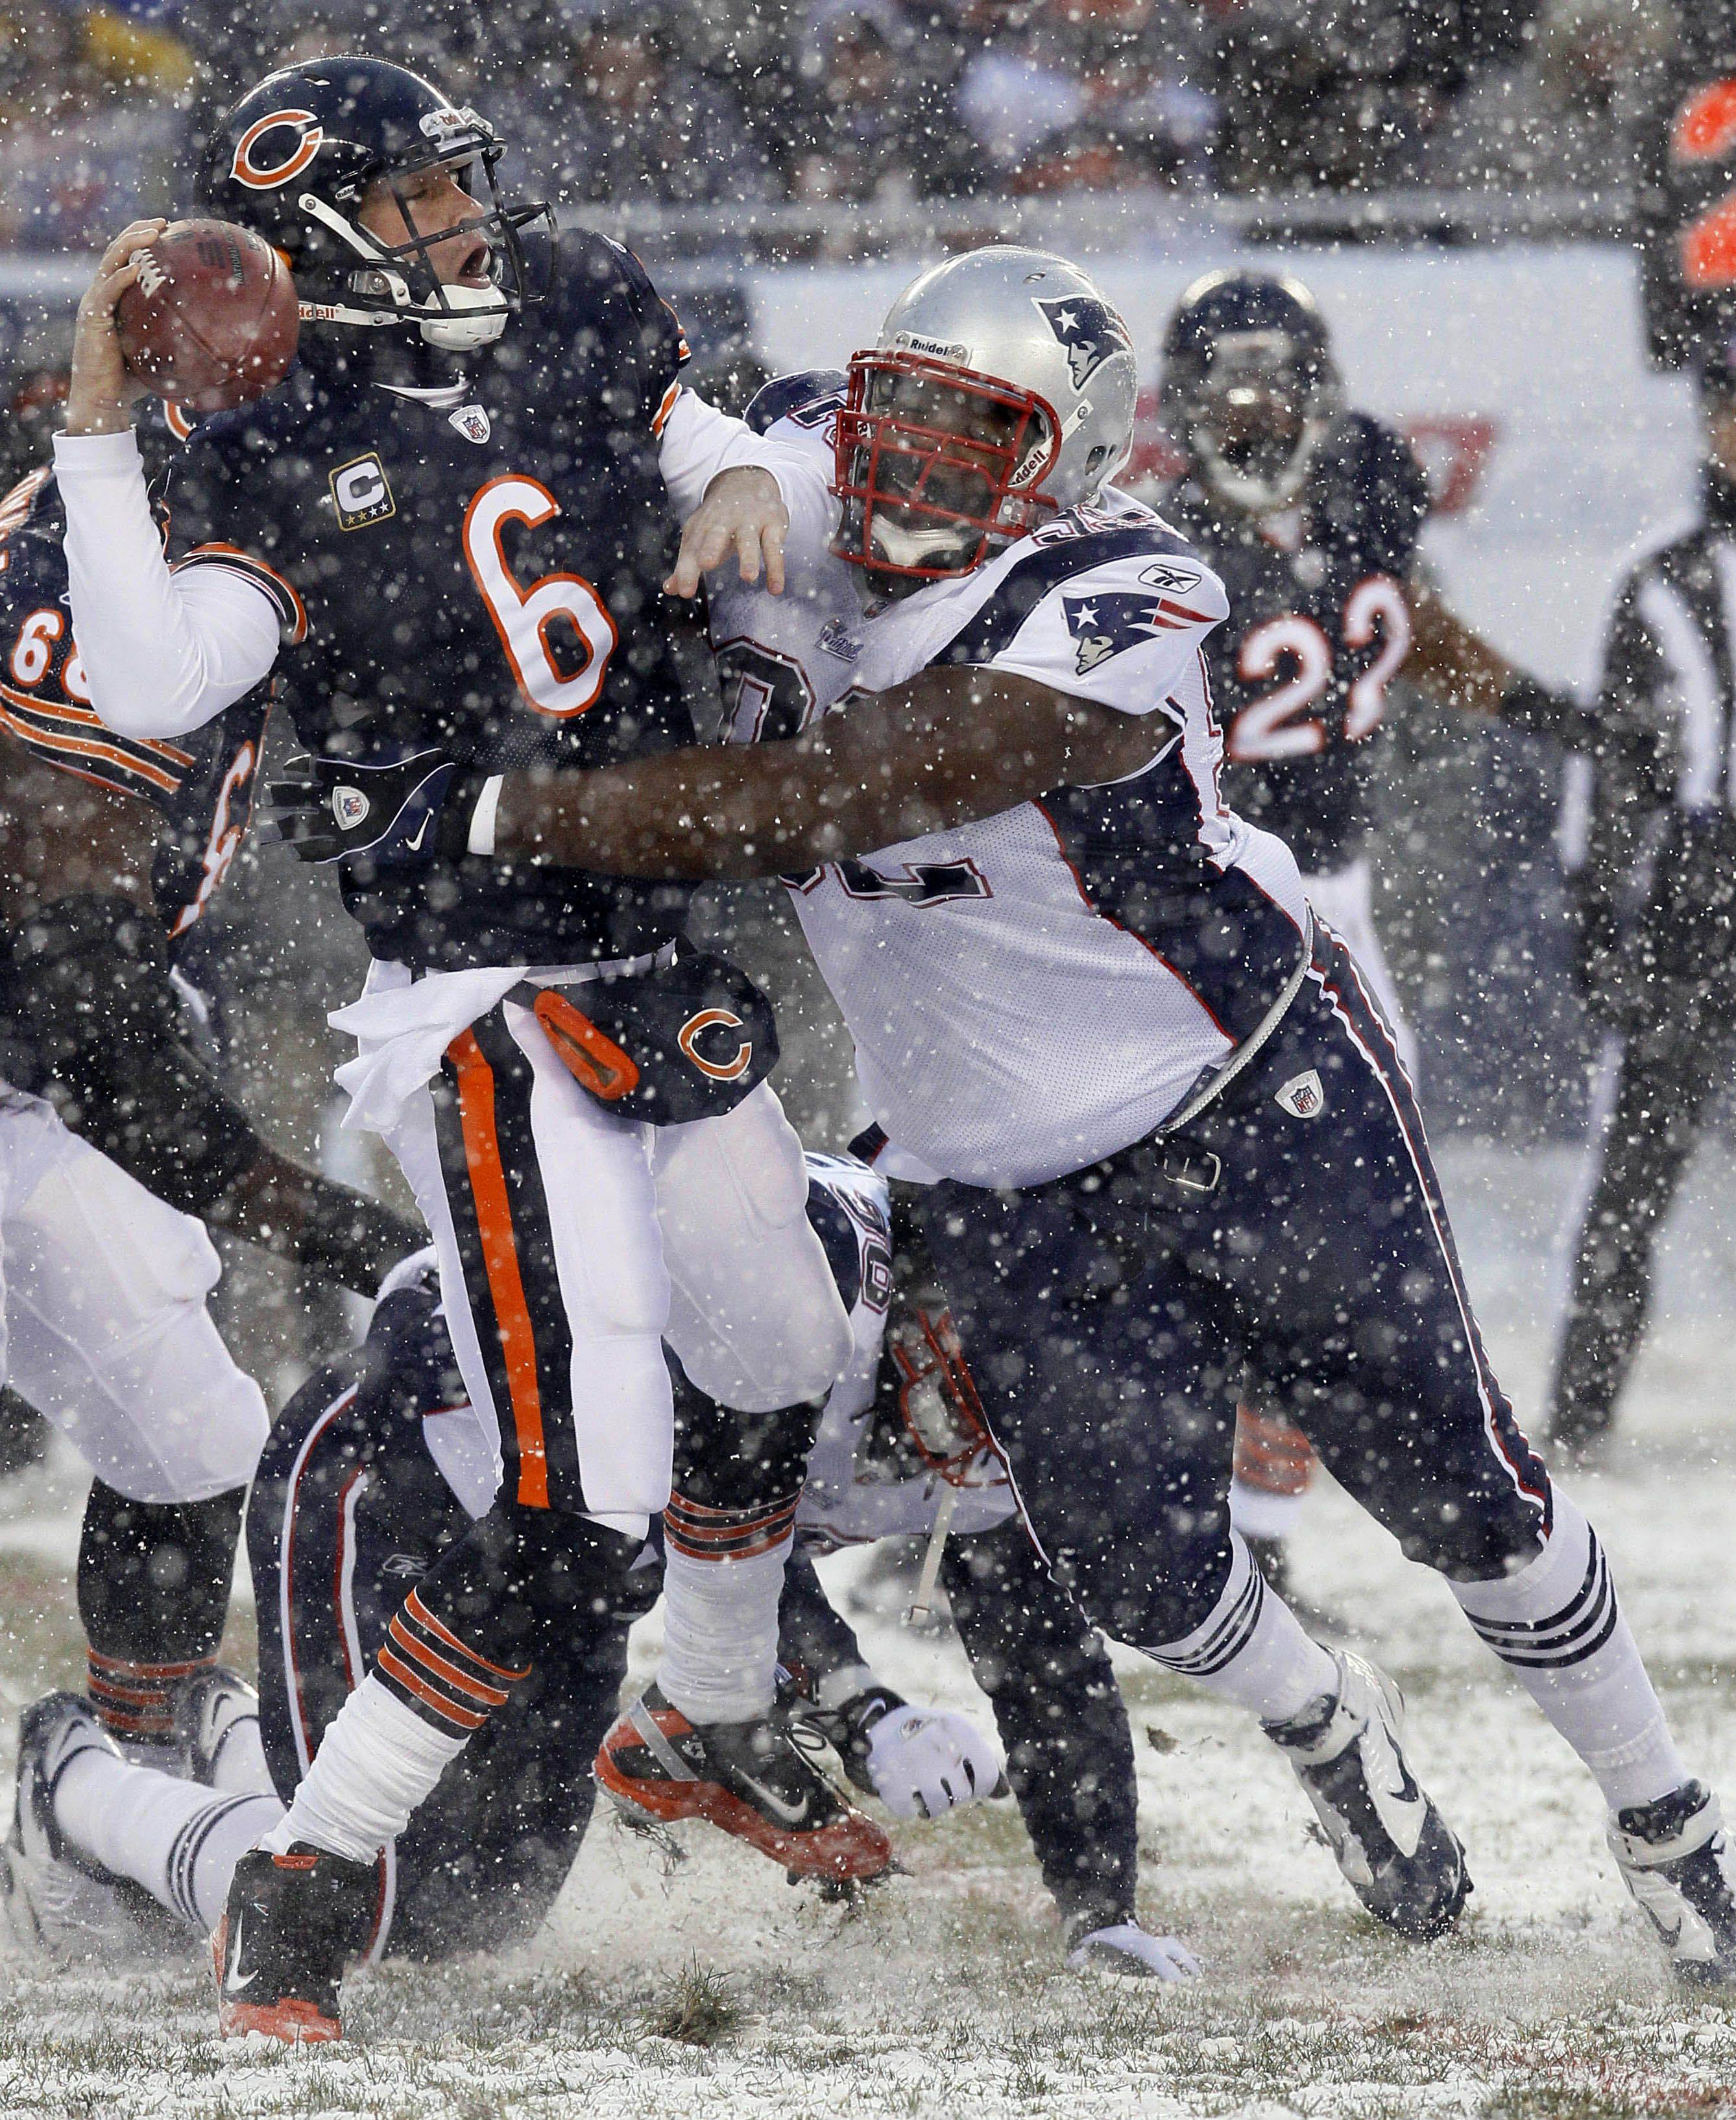 New England Patriots defensive tackle Gerard Warren, front right, and defensive end Jermaine Cunningham, bottom left, combine to sack Chicago Bears quarterback Jay Cutler in the first half.